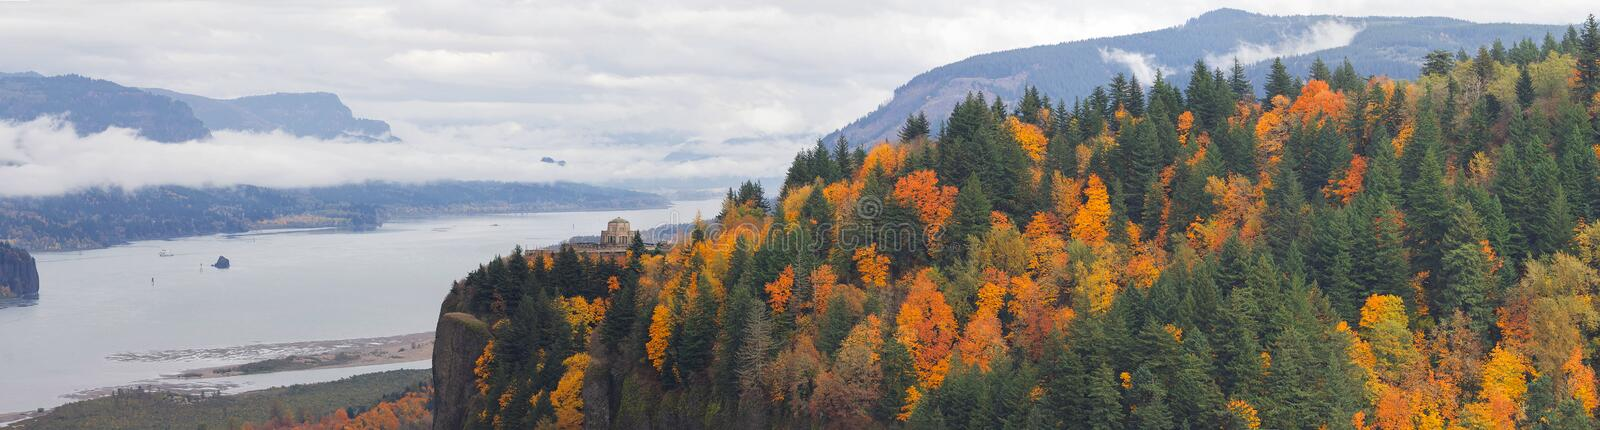 Crown Point at Columbia River Gorge in Fall. Vista House on Crown Point Along Columbia River Gorge Oregon in Fall Season Panorama royalty free stock image